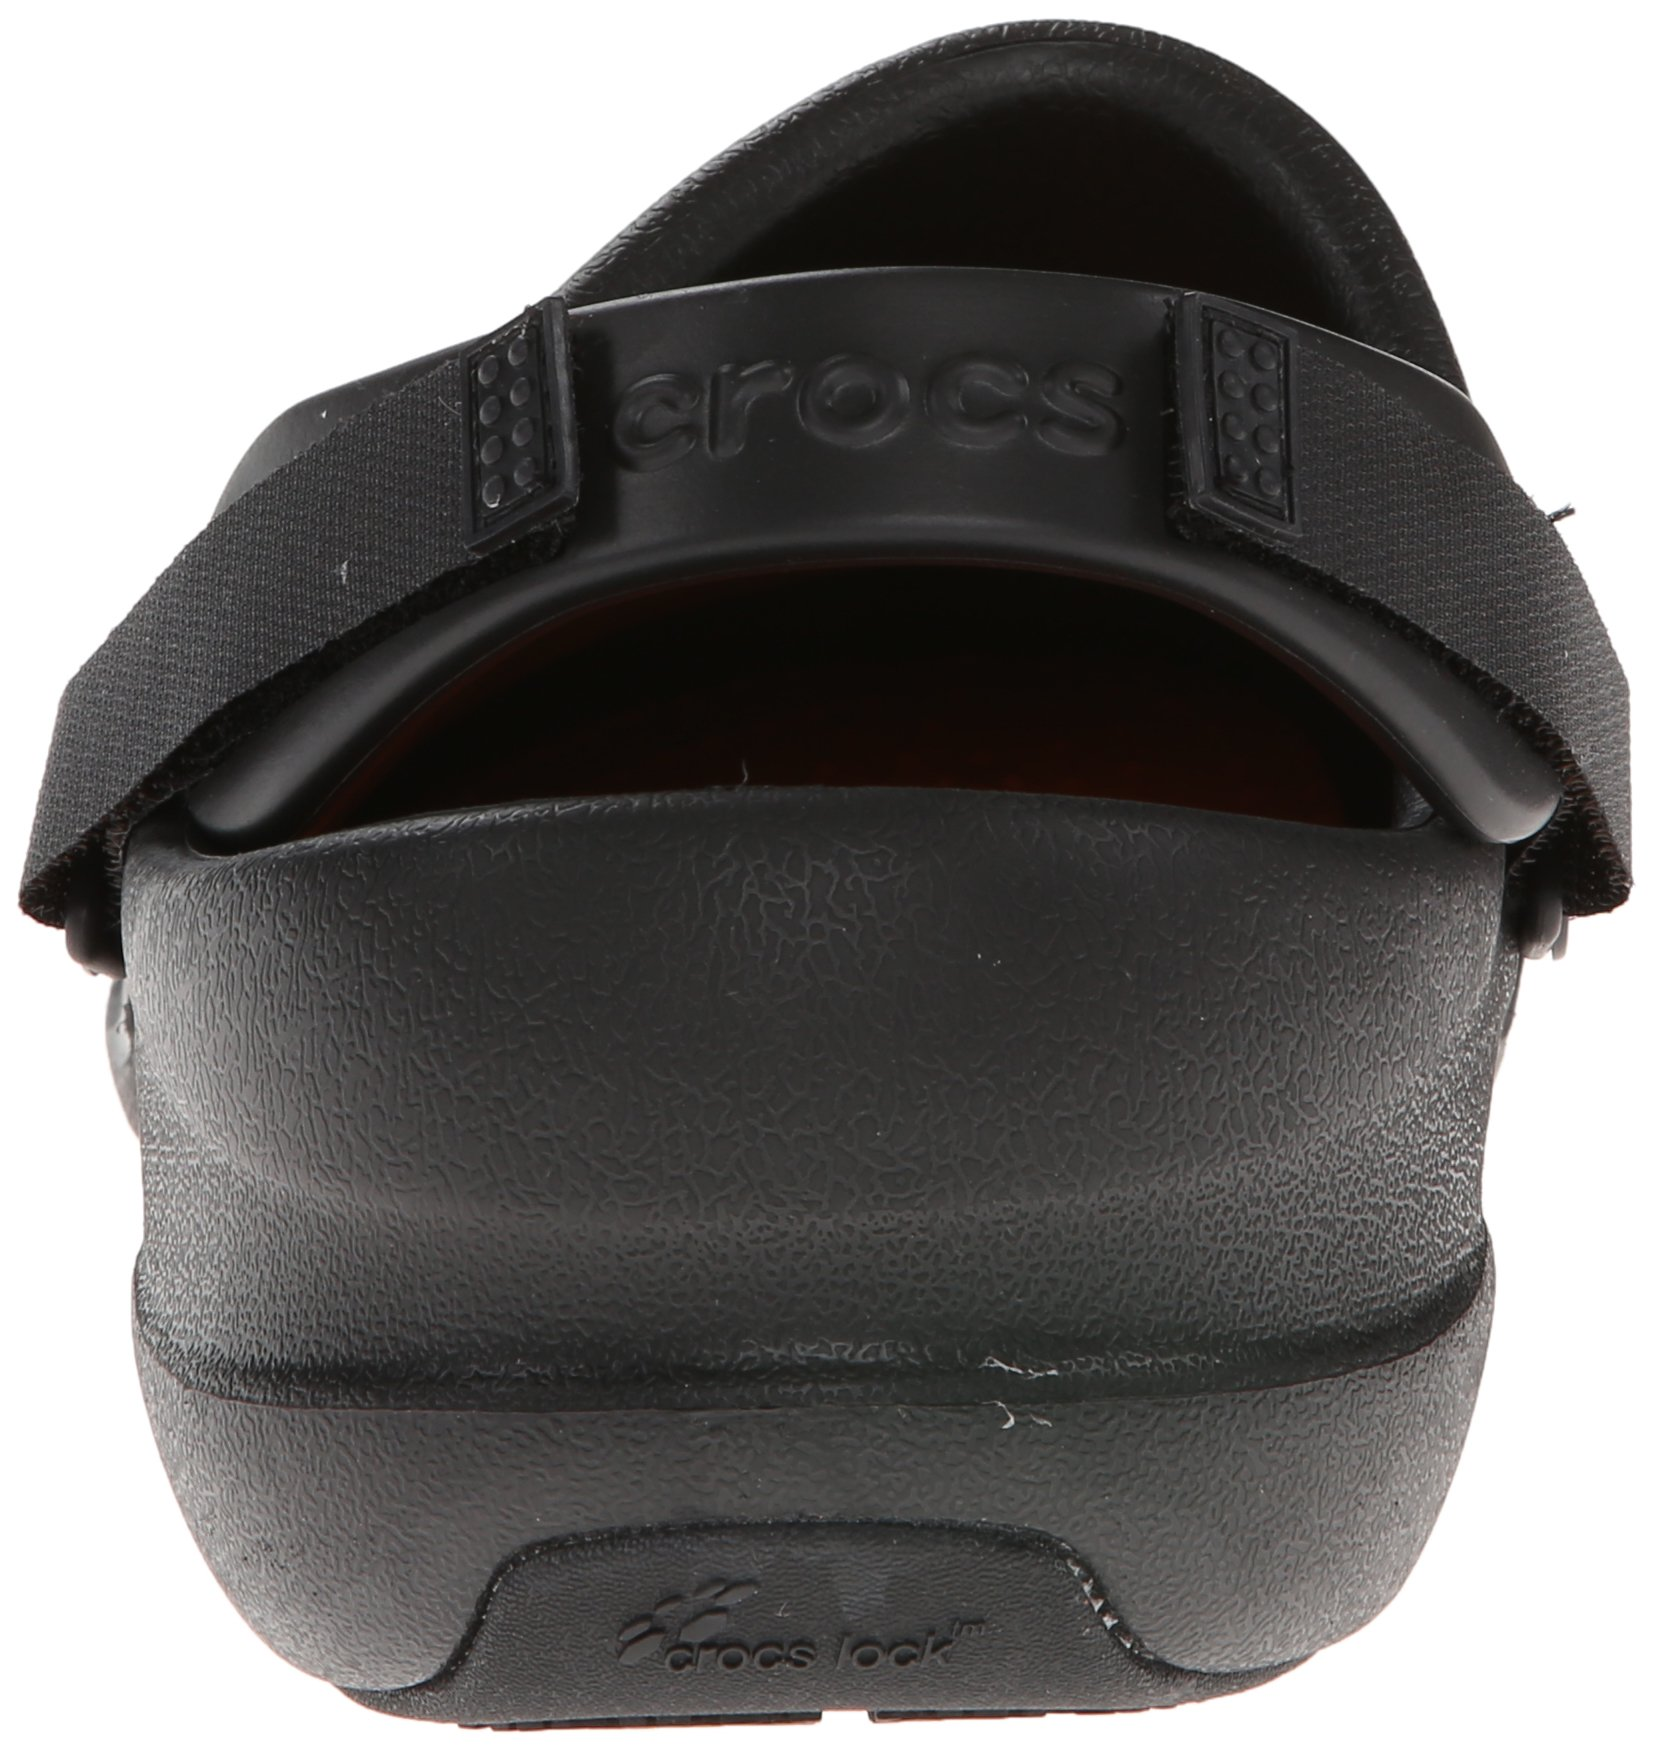 Crocs Men's 15010 Bistro Pro Clog,Black,11 M US by Crocs (Image #2)